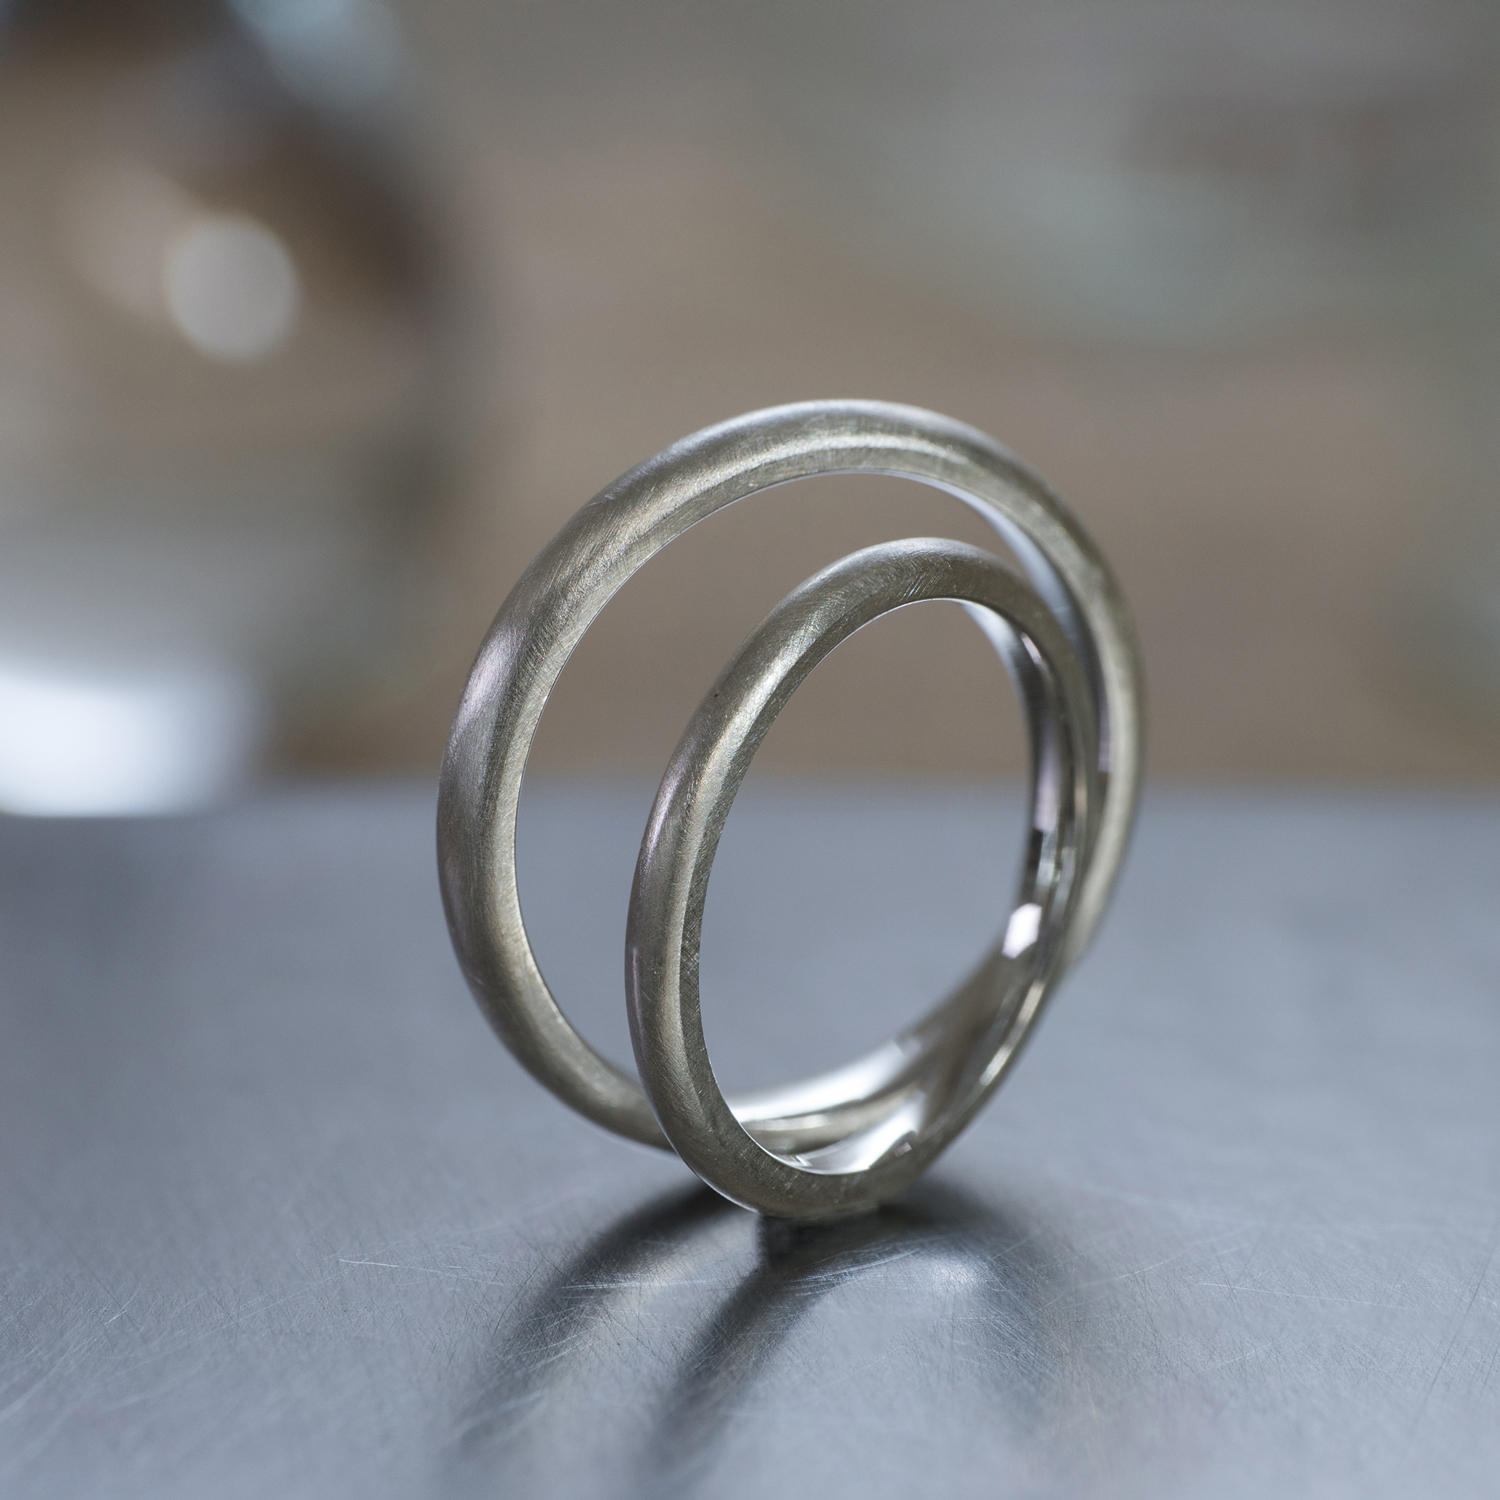 2.0mm and 2.6mm round shape in silver #屋久島でつくる結婚指輪